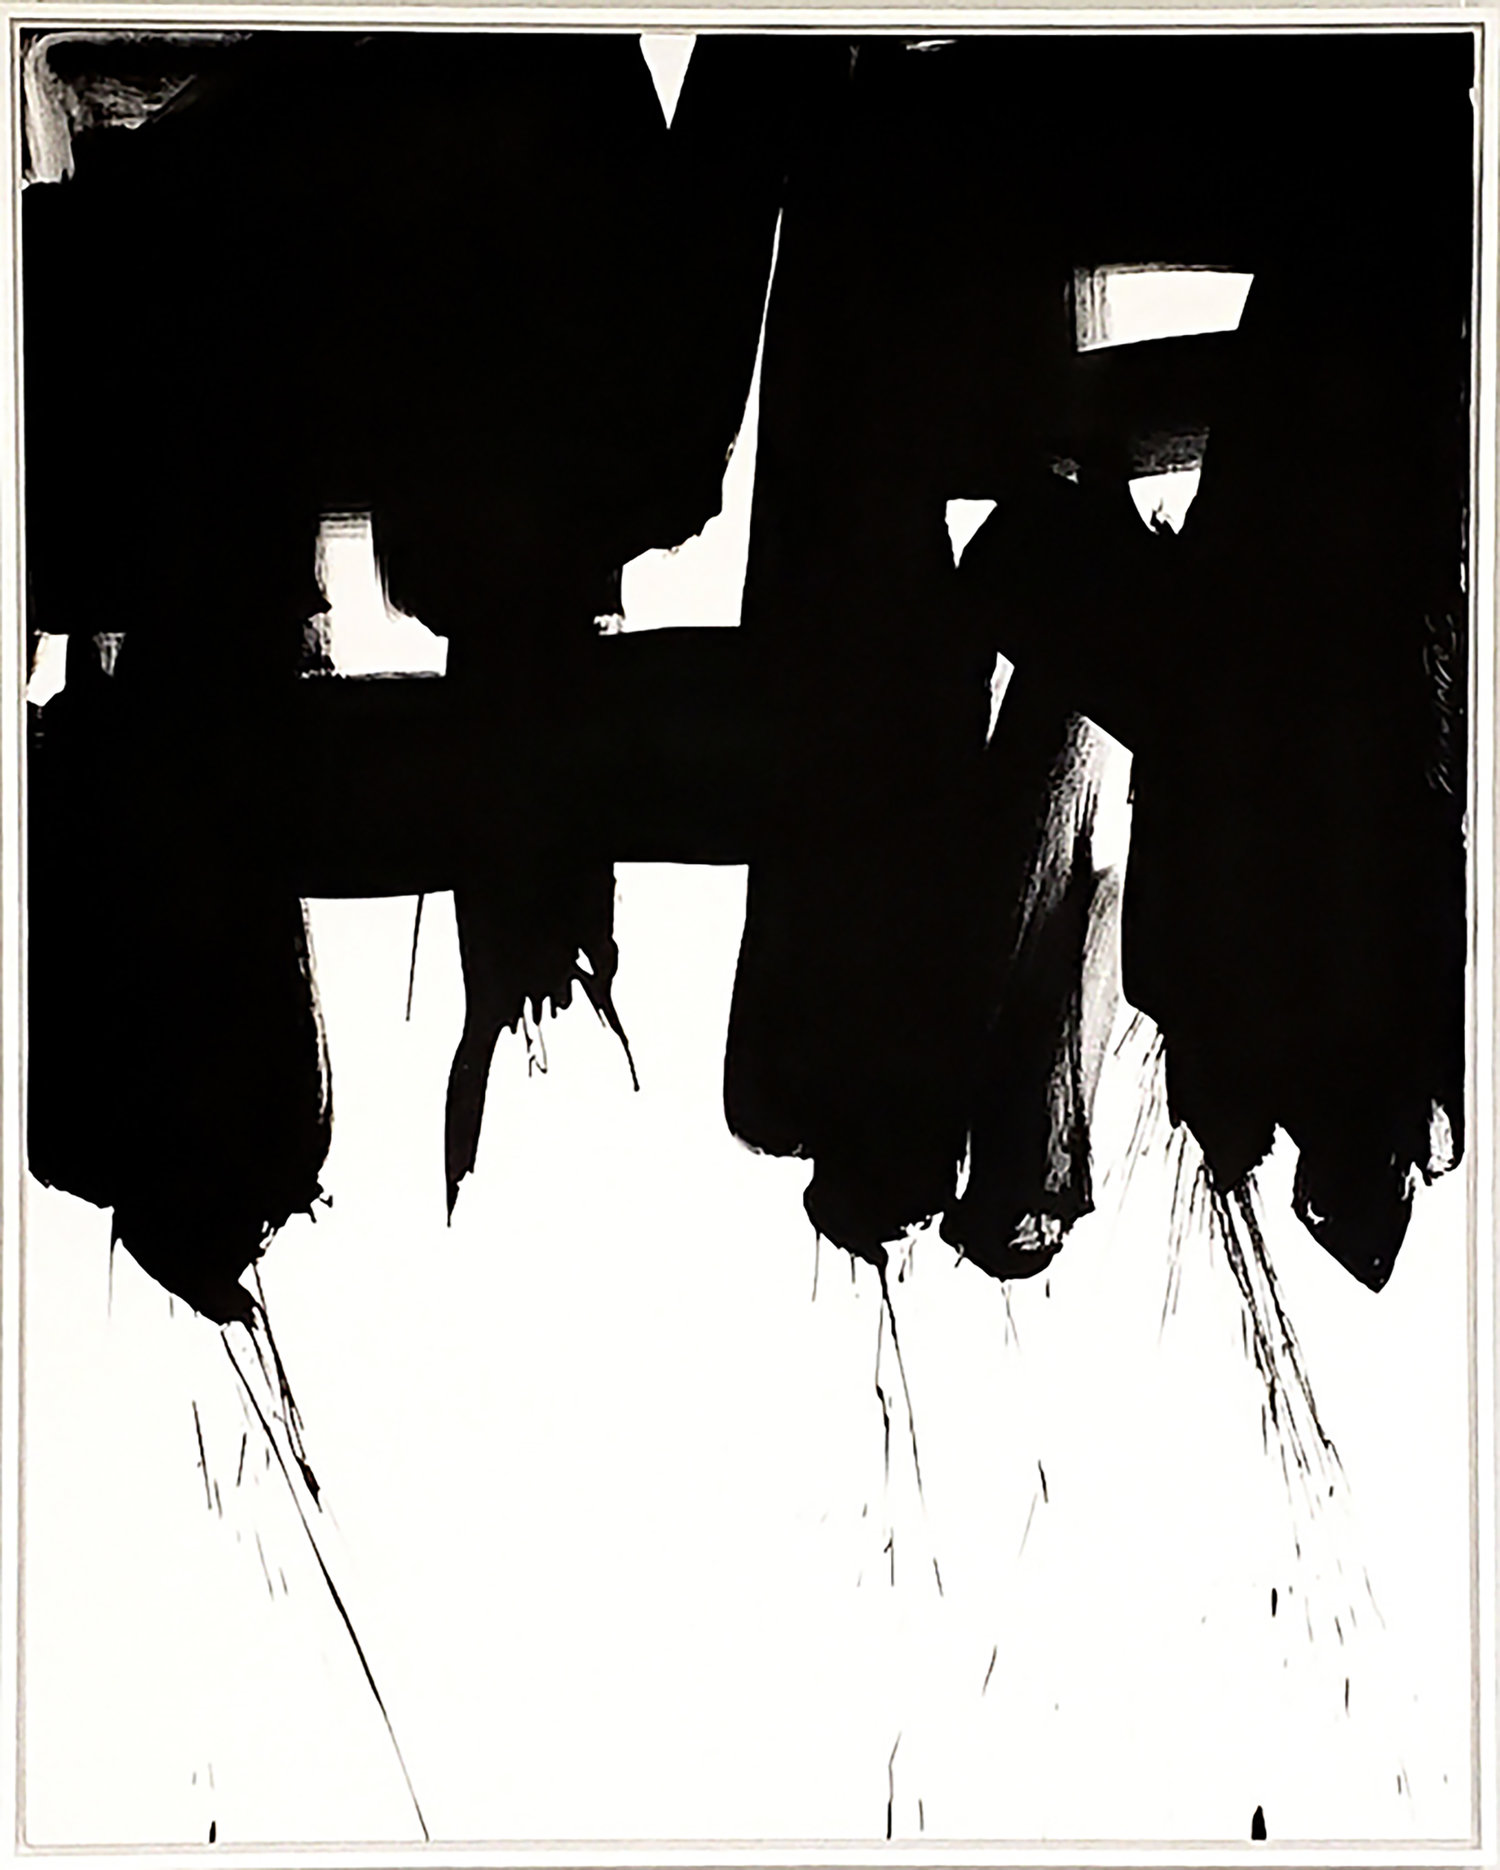 "Black and White #67, 2019, acrylic on canvas, 60"" x 48"" (152.4 x 71 cm)"